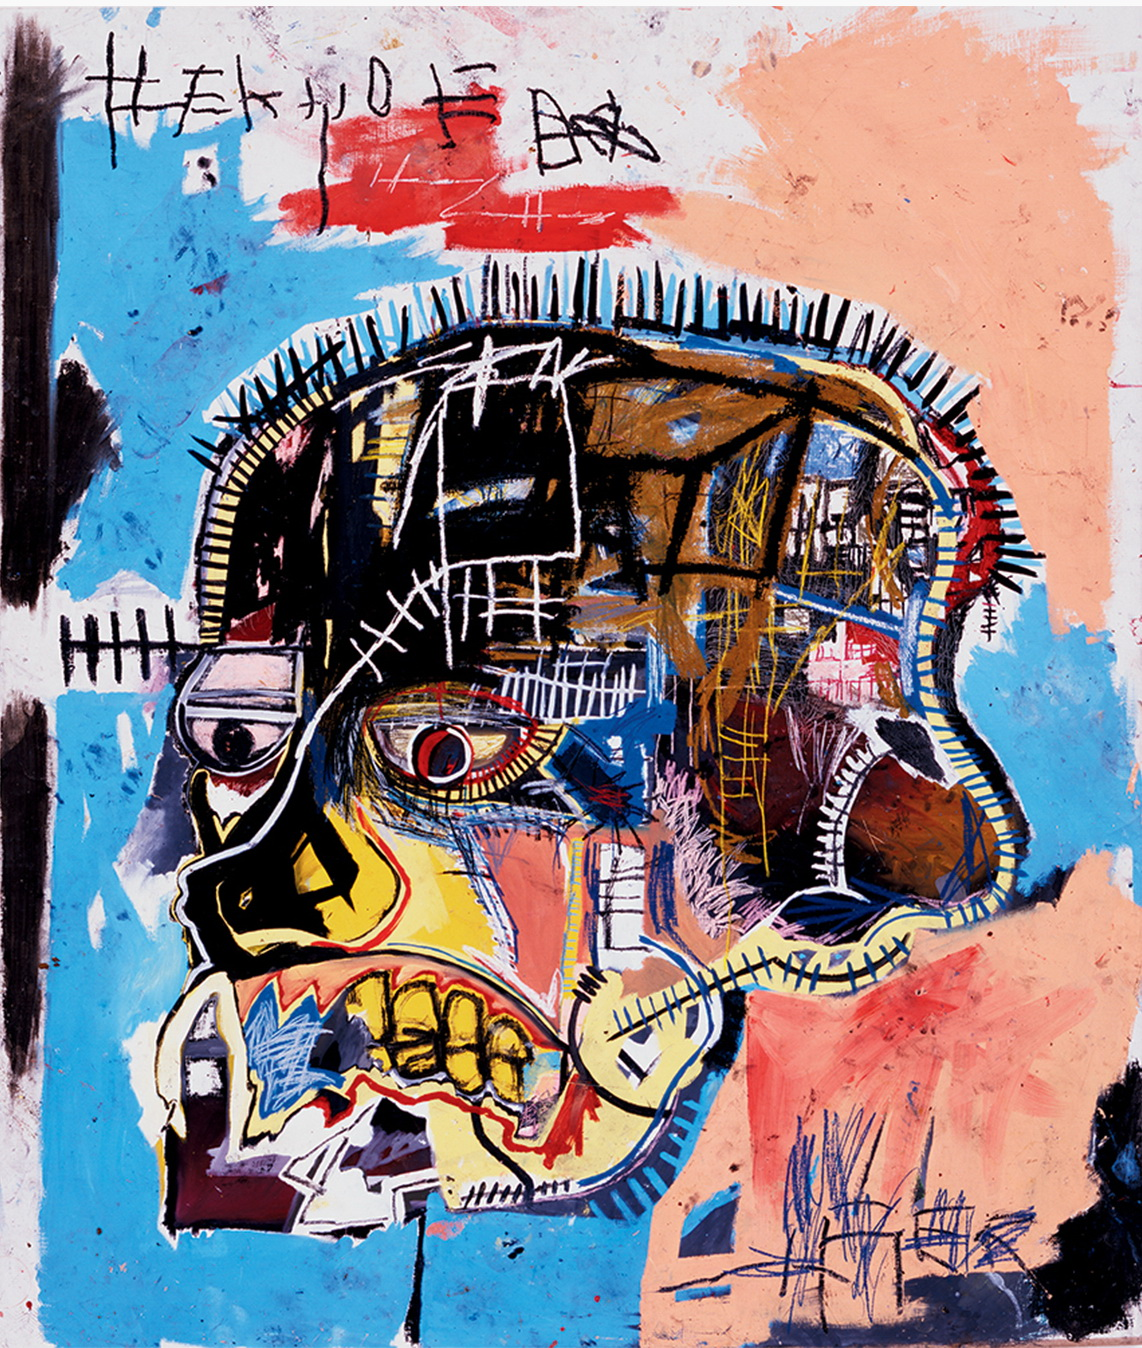 Basquiat Louis Vuitton Foundation Fashionela